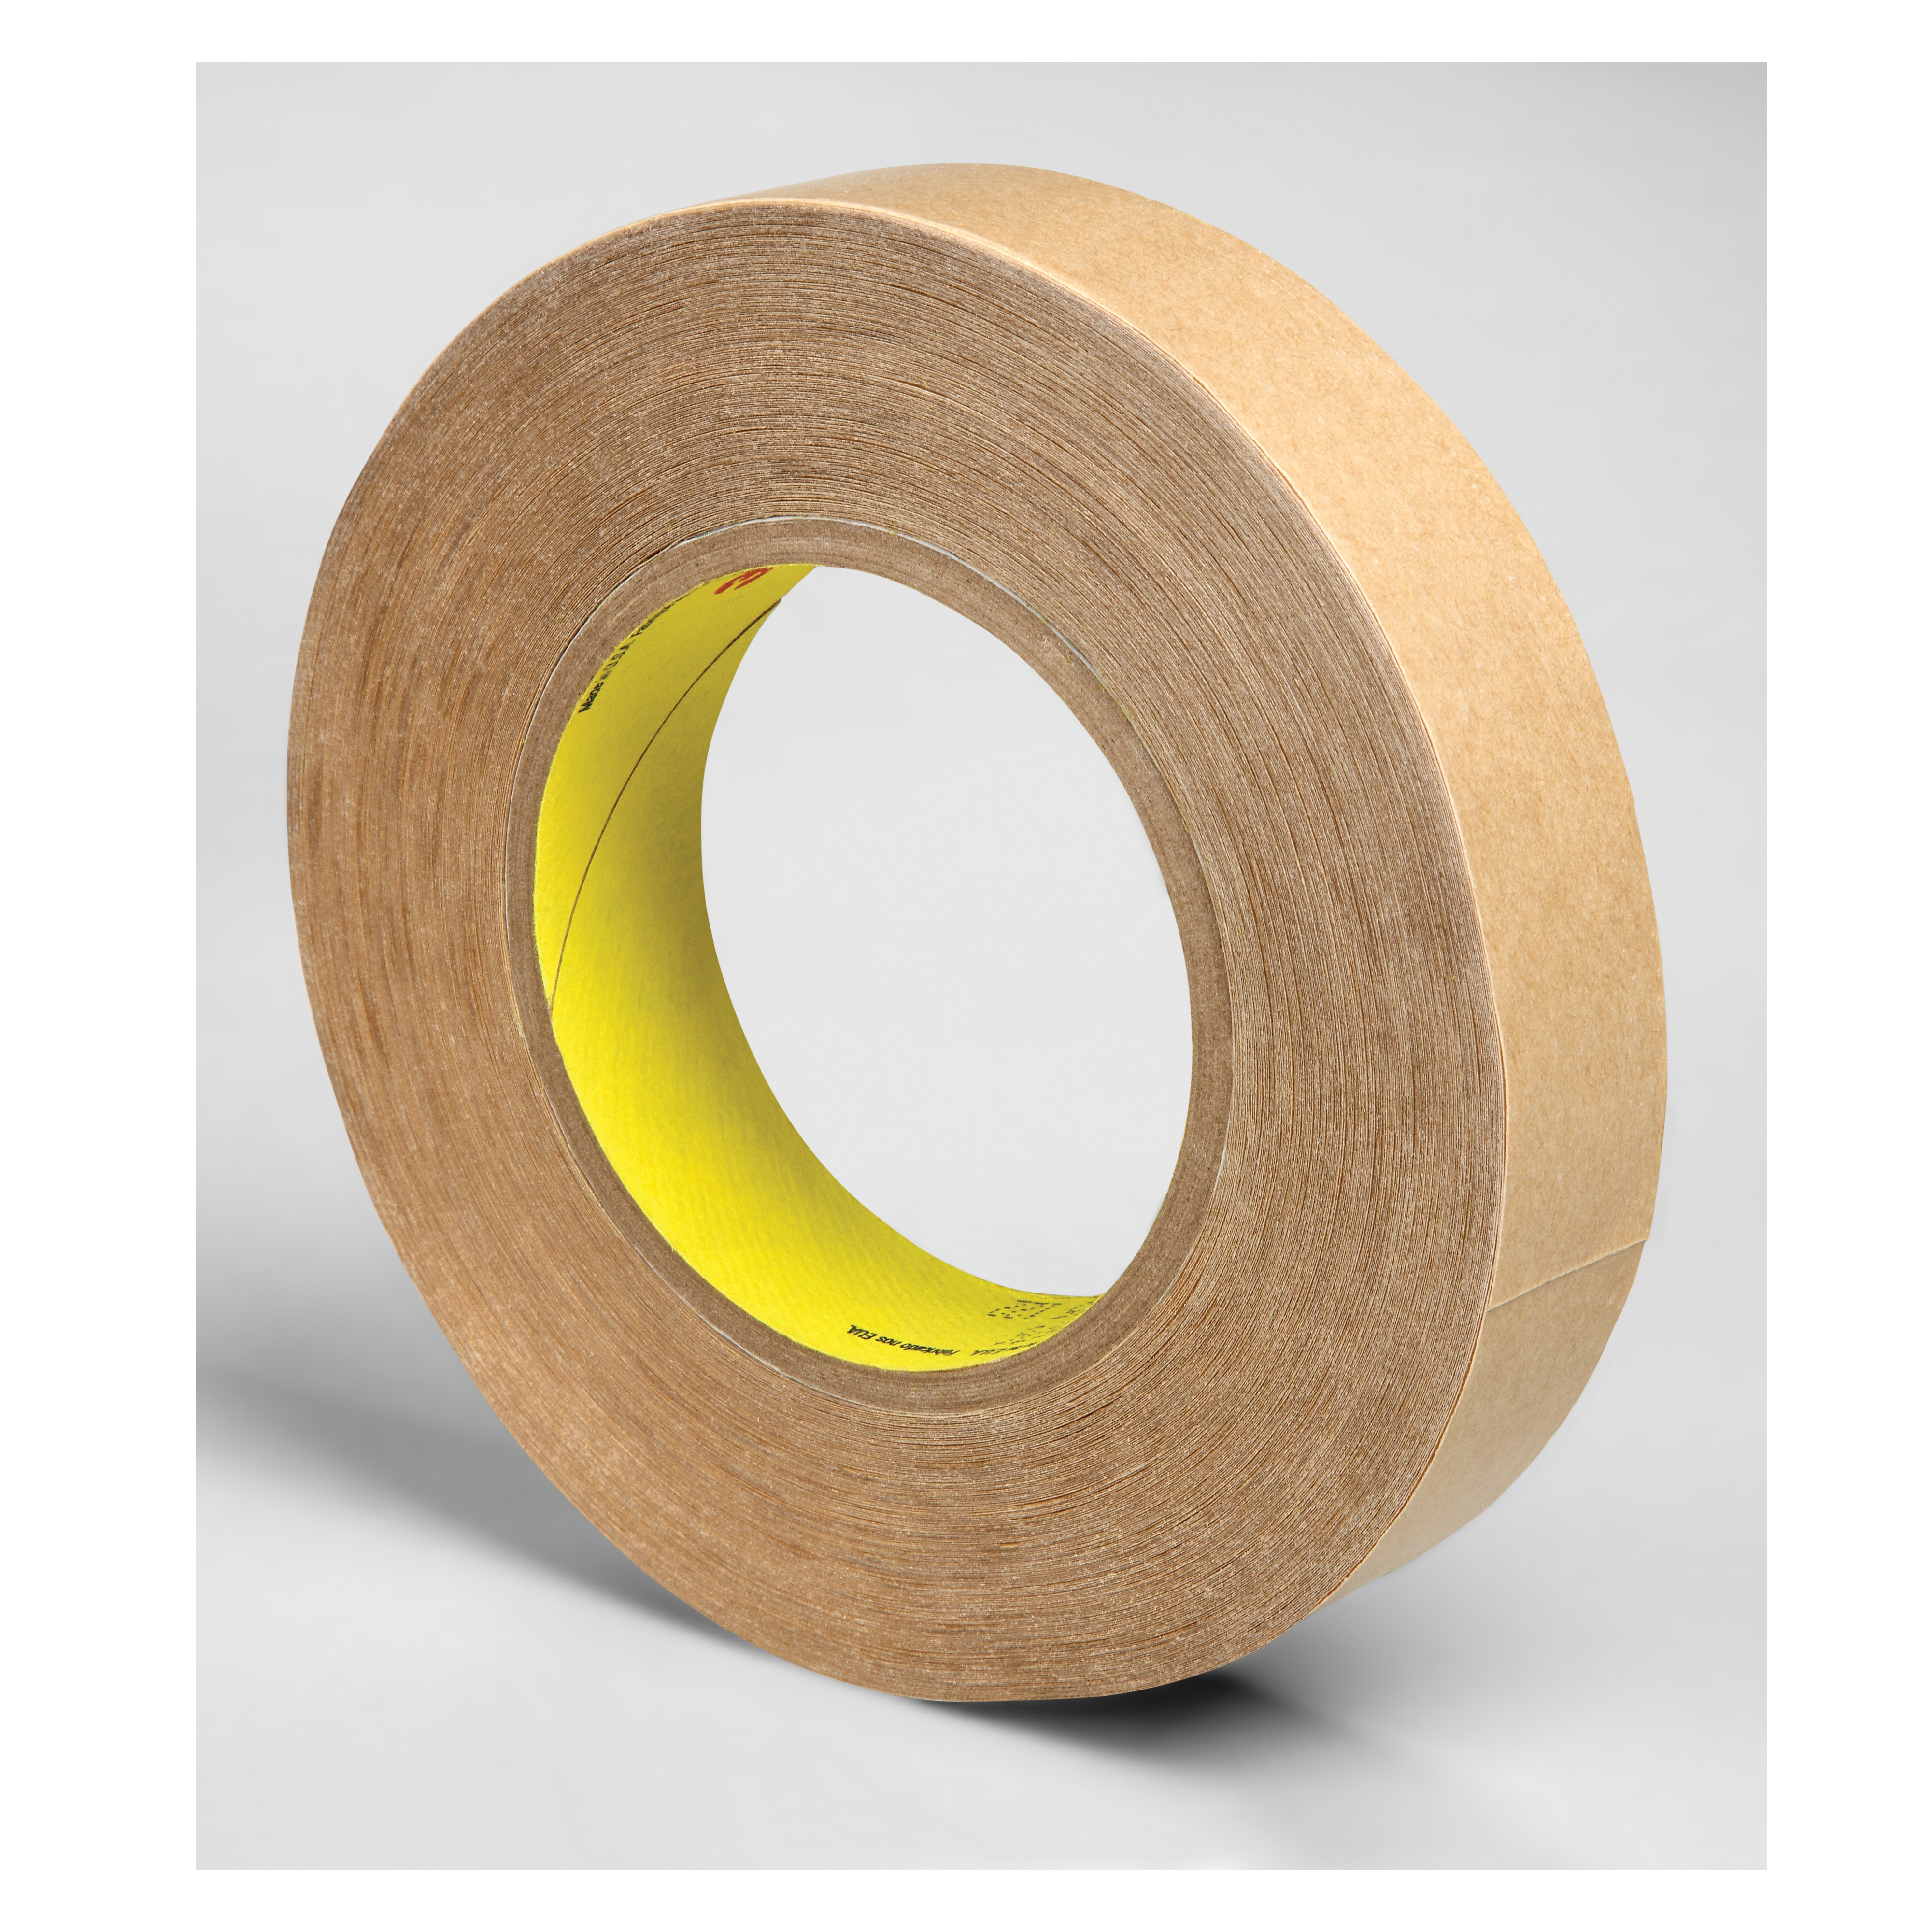 3M™ VHB™ 021200-84153 Double Sided Bonding Tape, 36 yd L x 1 in W, 0.04 in THK, General Purpose Acrylic Adhesive, Acrylic Foam Backing, Clear